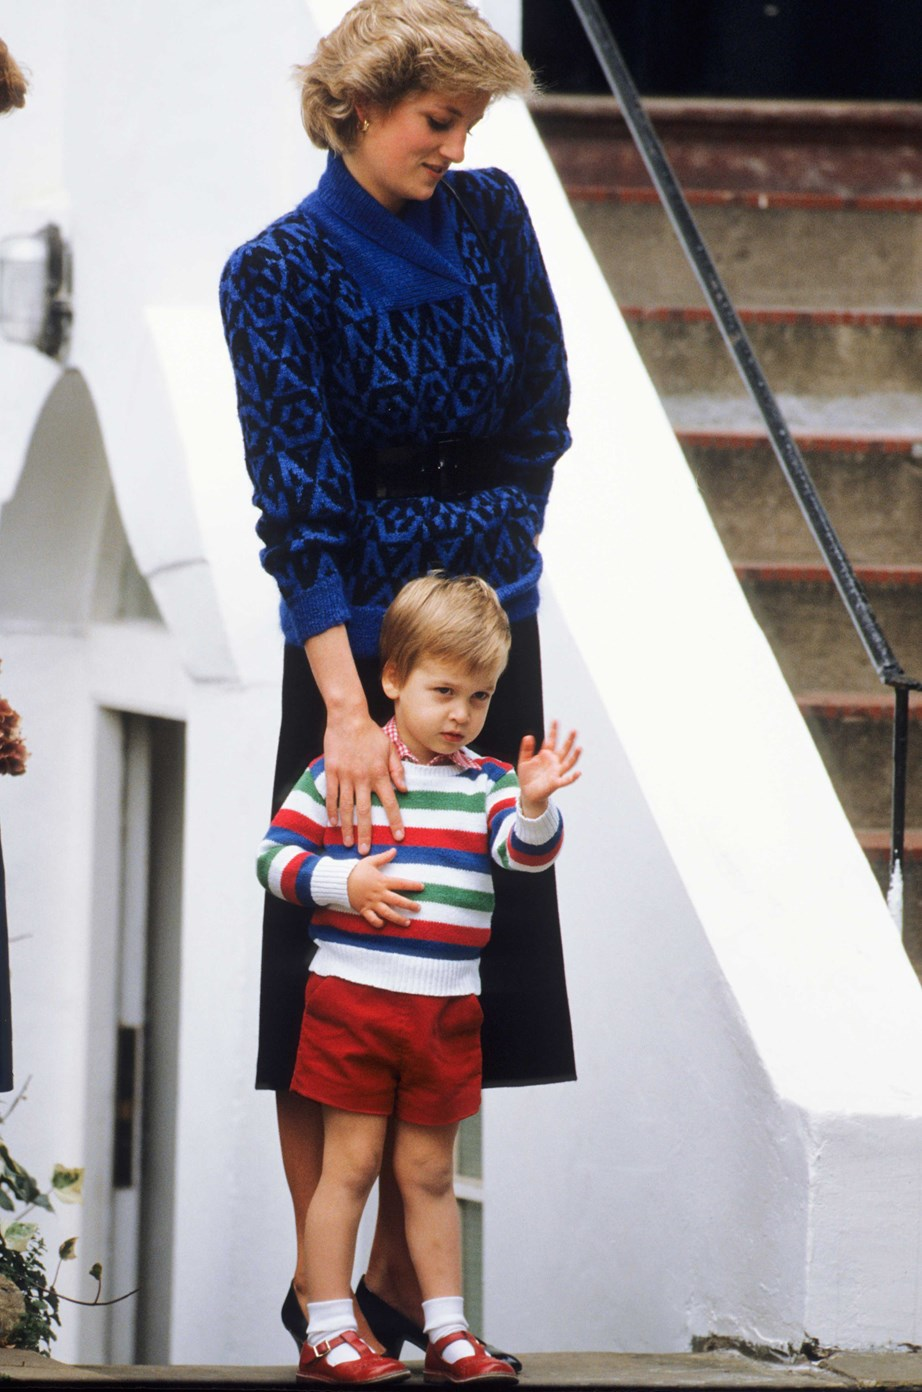 "**Prince William, 1985** <br><br> Dressed in a colourful striped top, young William waves to the press before [starting his first day at Chepstow Villas](https://www.nowtolove.co.nz/celebrity/royals/prince-williams-first-day-at-school-34067|target=""_blank""). He also became the first royal to attend a public kindergarten. <br><br> *(Image: Getty)*"